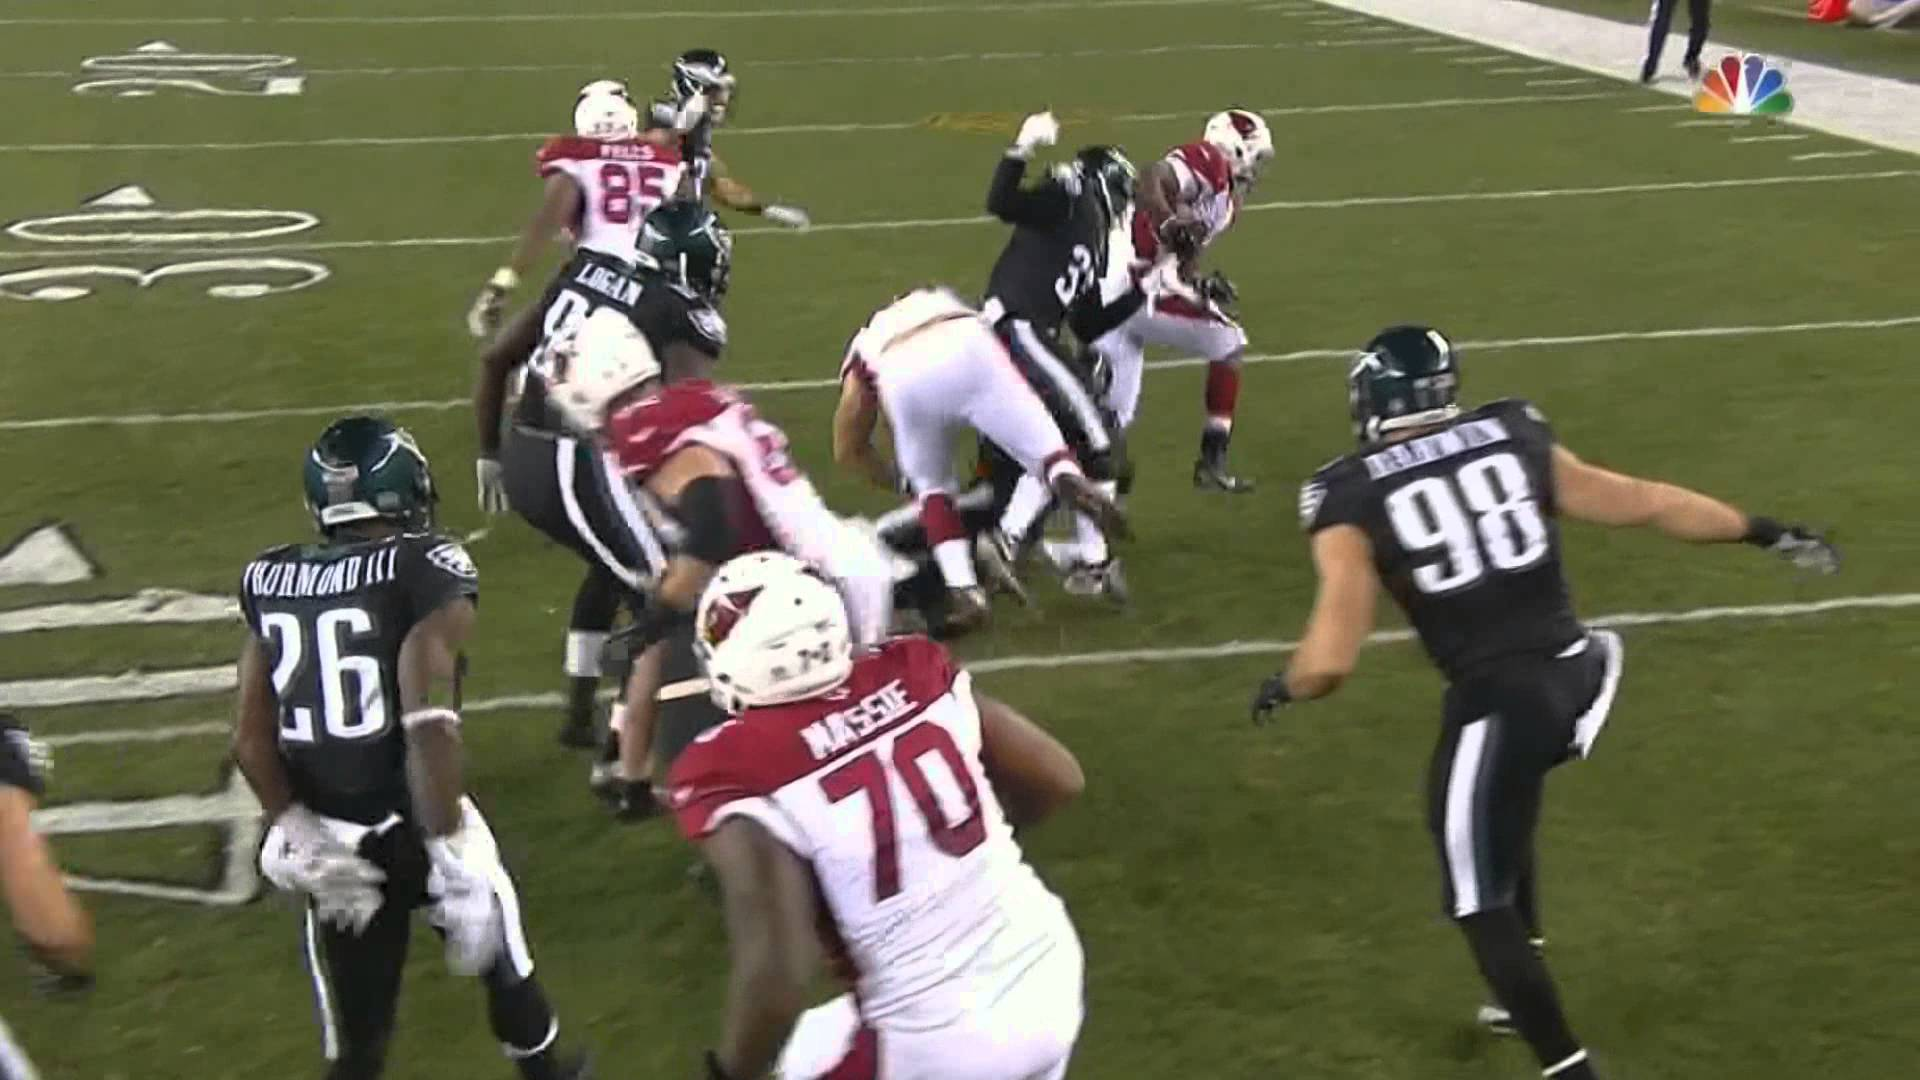 Cardinals RB David Johnson goes beast mode on the Eagles